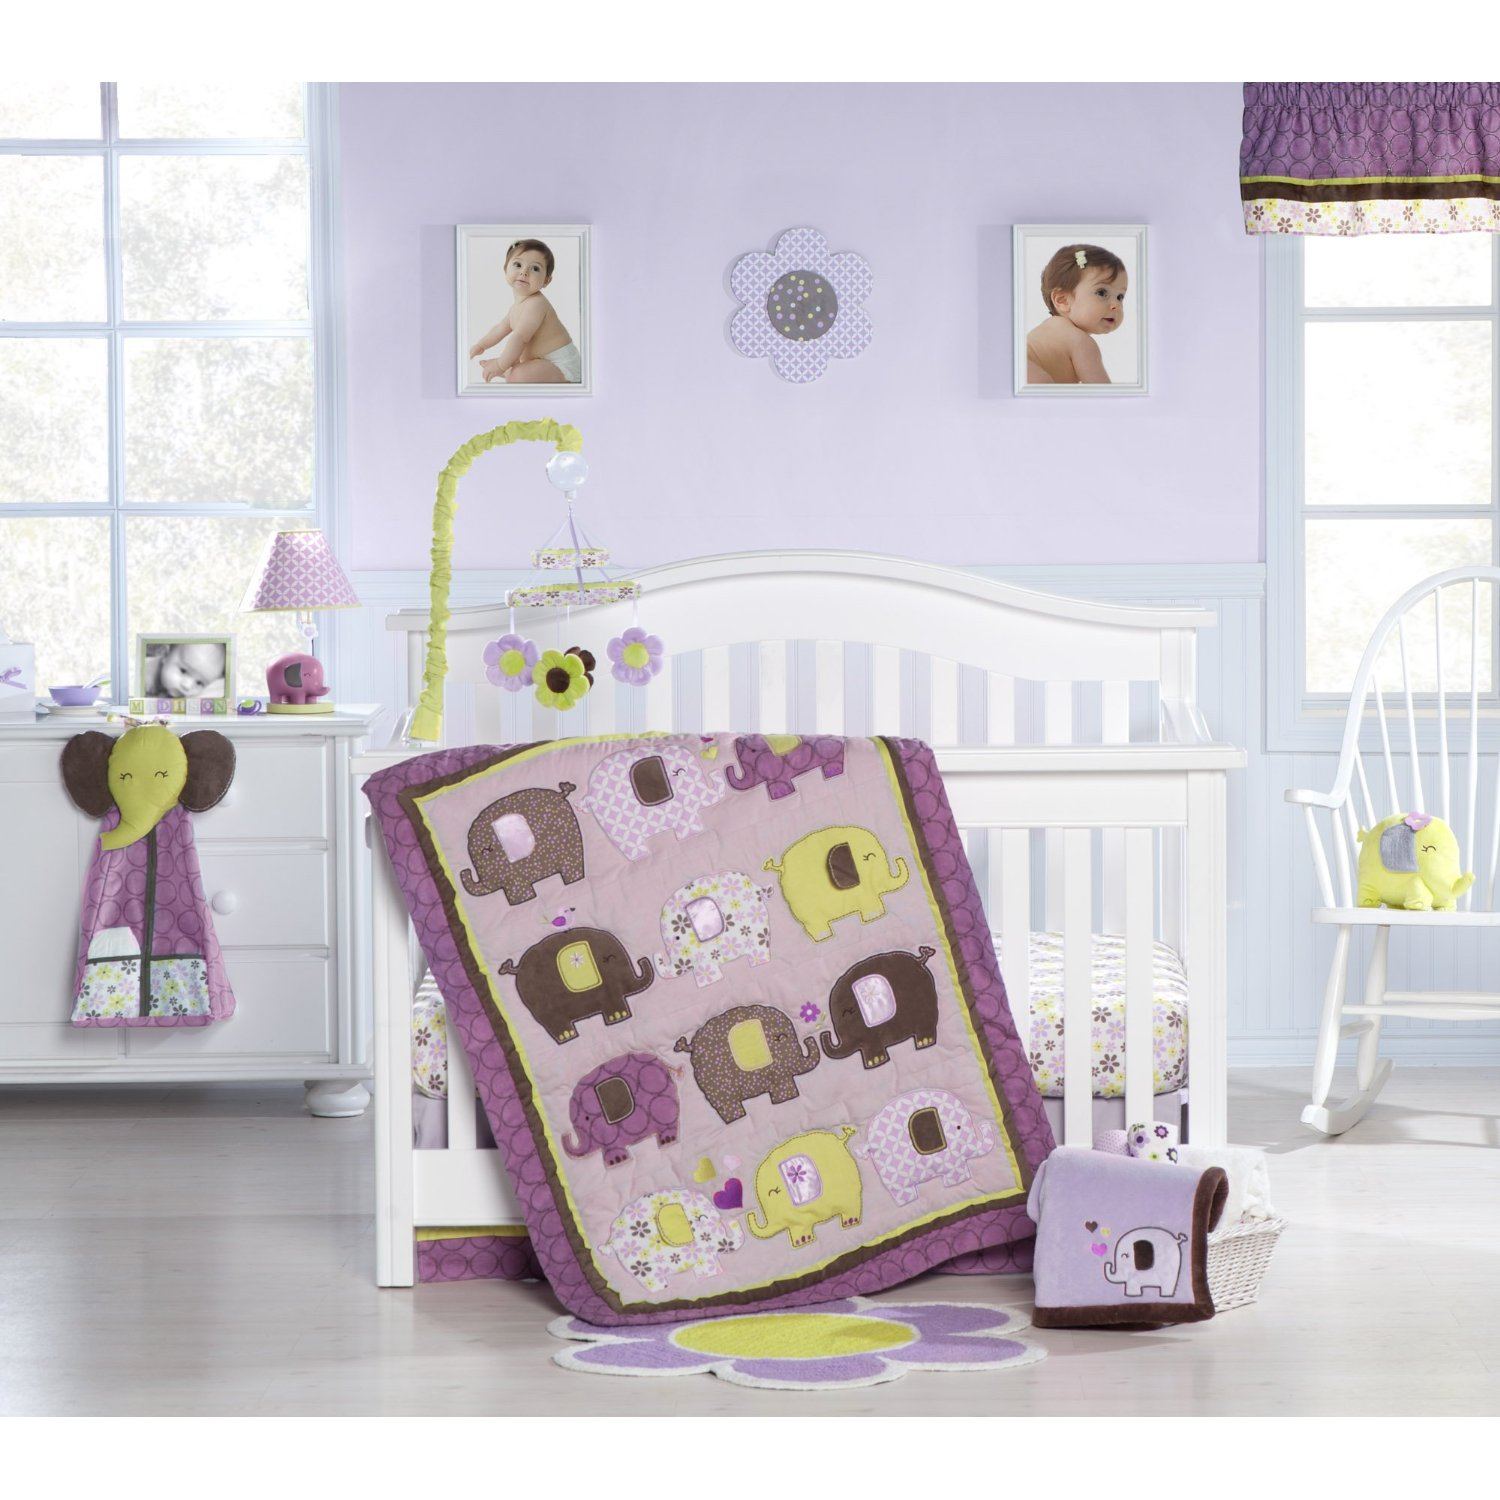 Image of: Baby Elephant Nursery Bedding Set